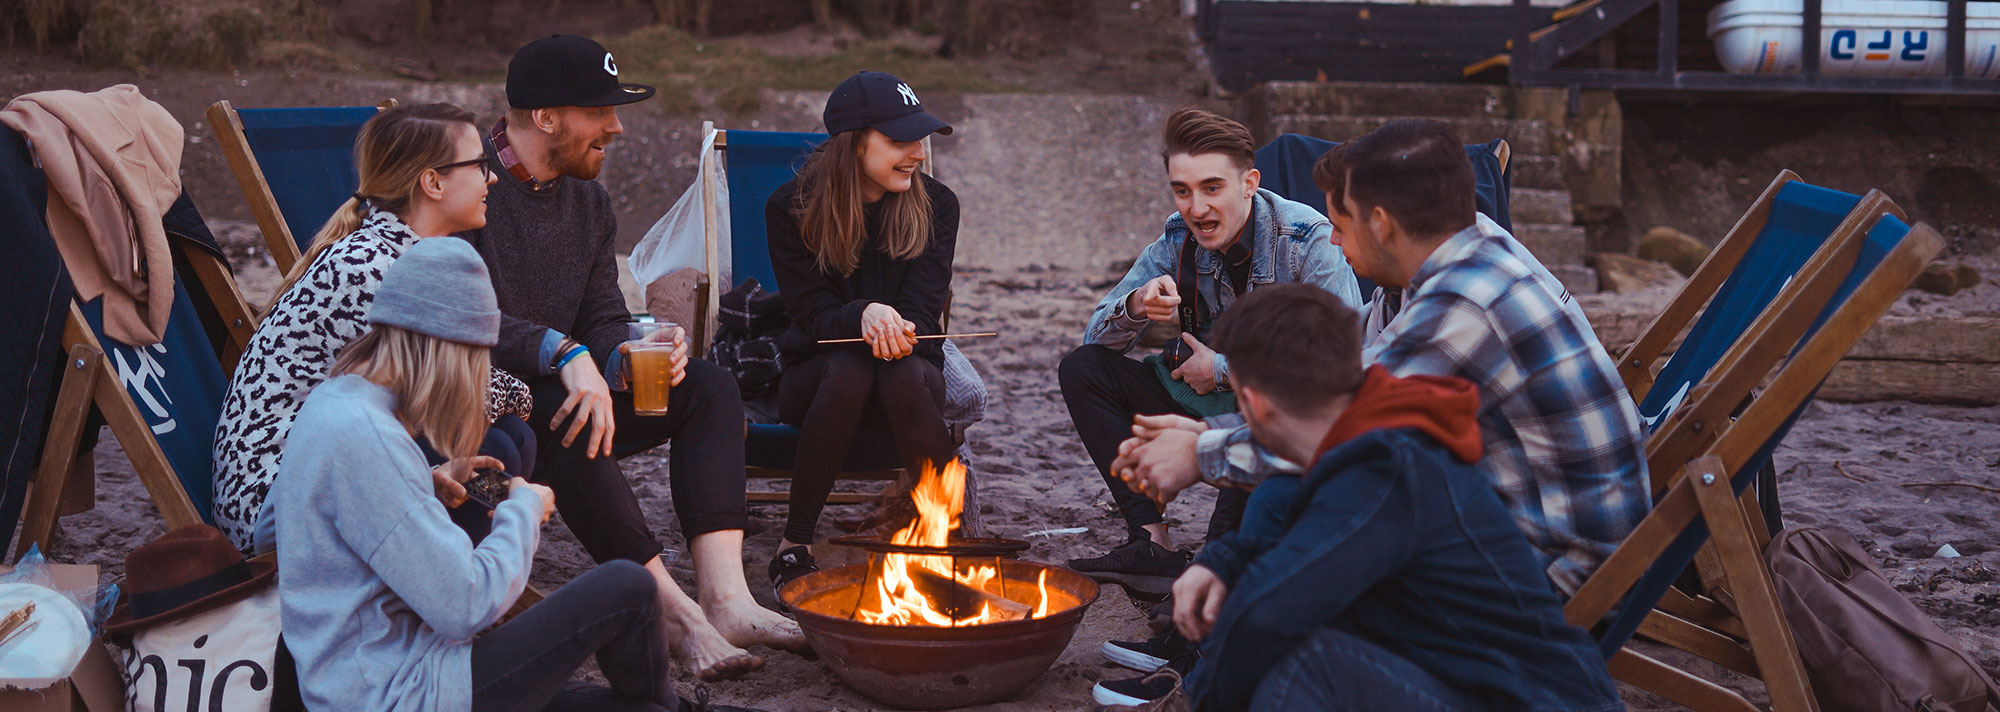 Extreme saving – pros and cons of joining the FIRE movement | Money & Life